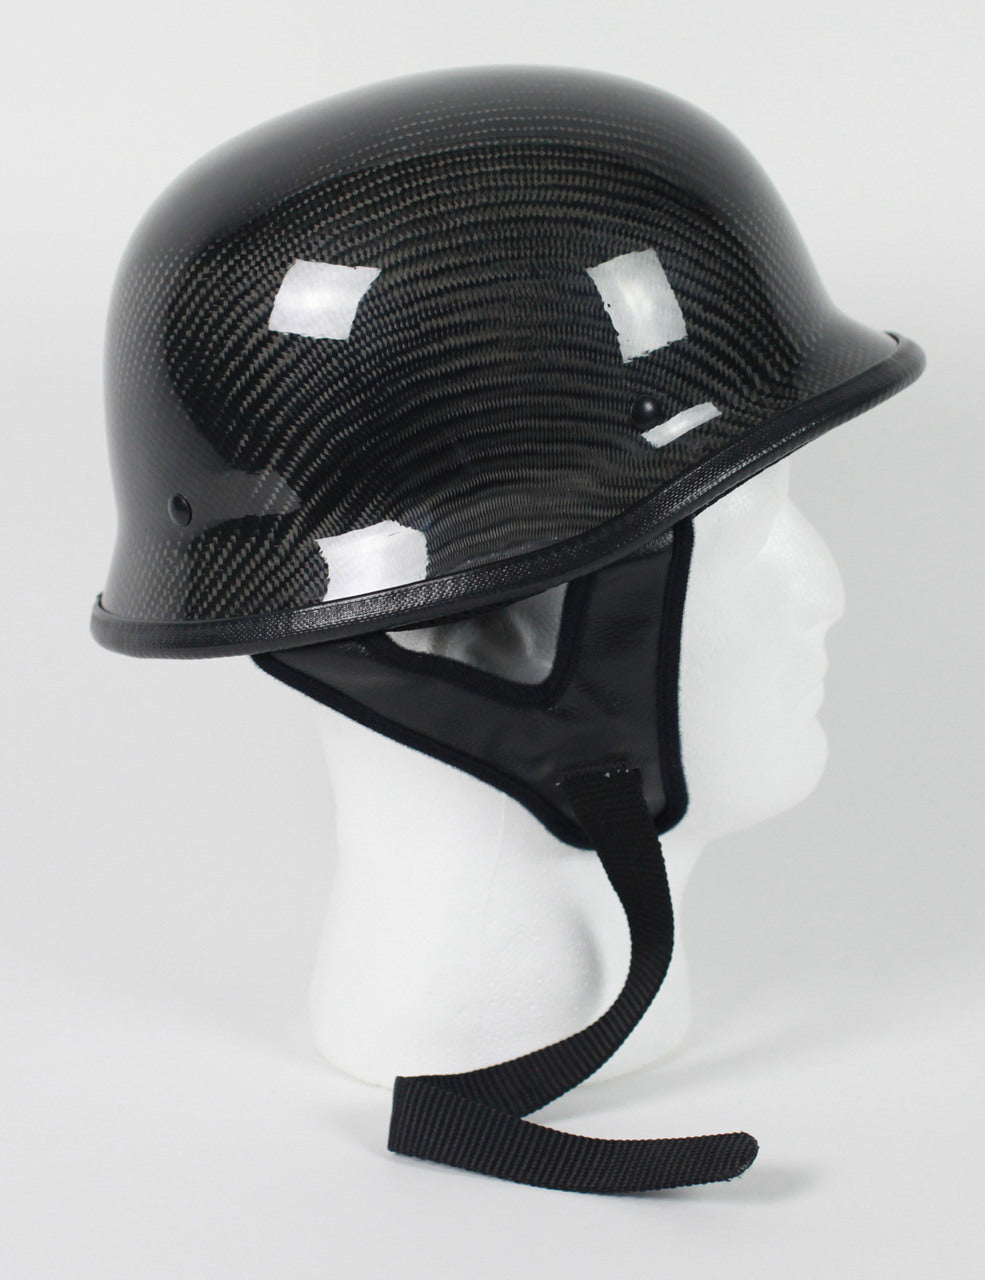 Real Carbon Fiber DOT German Motorcycle Helmet - SKU USA-103CF-HI - USA Biker Leather